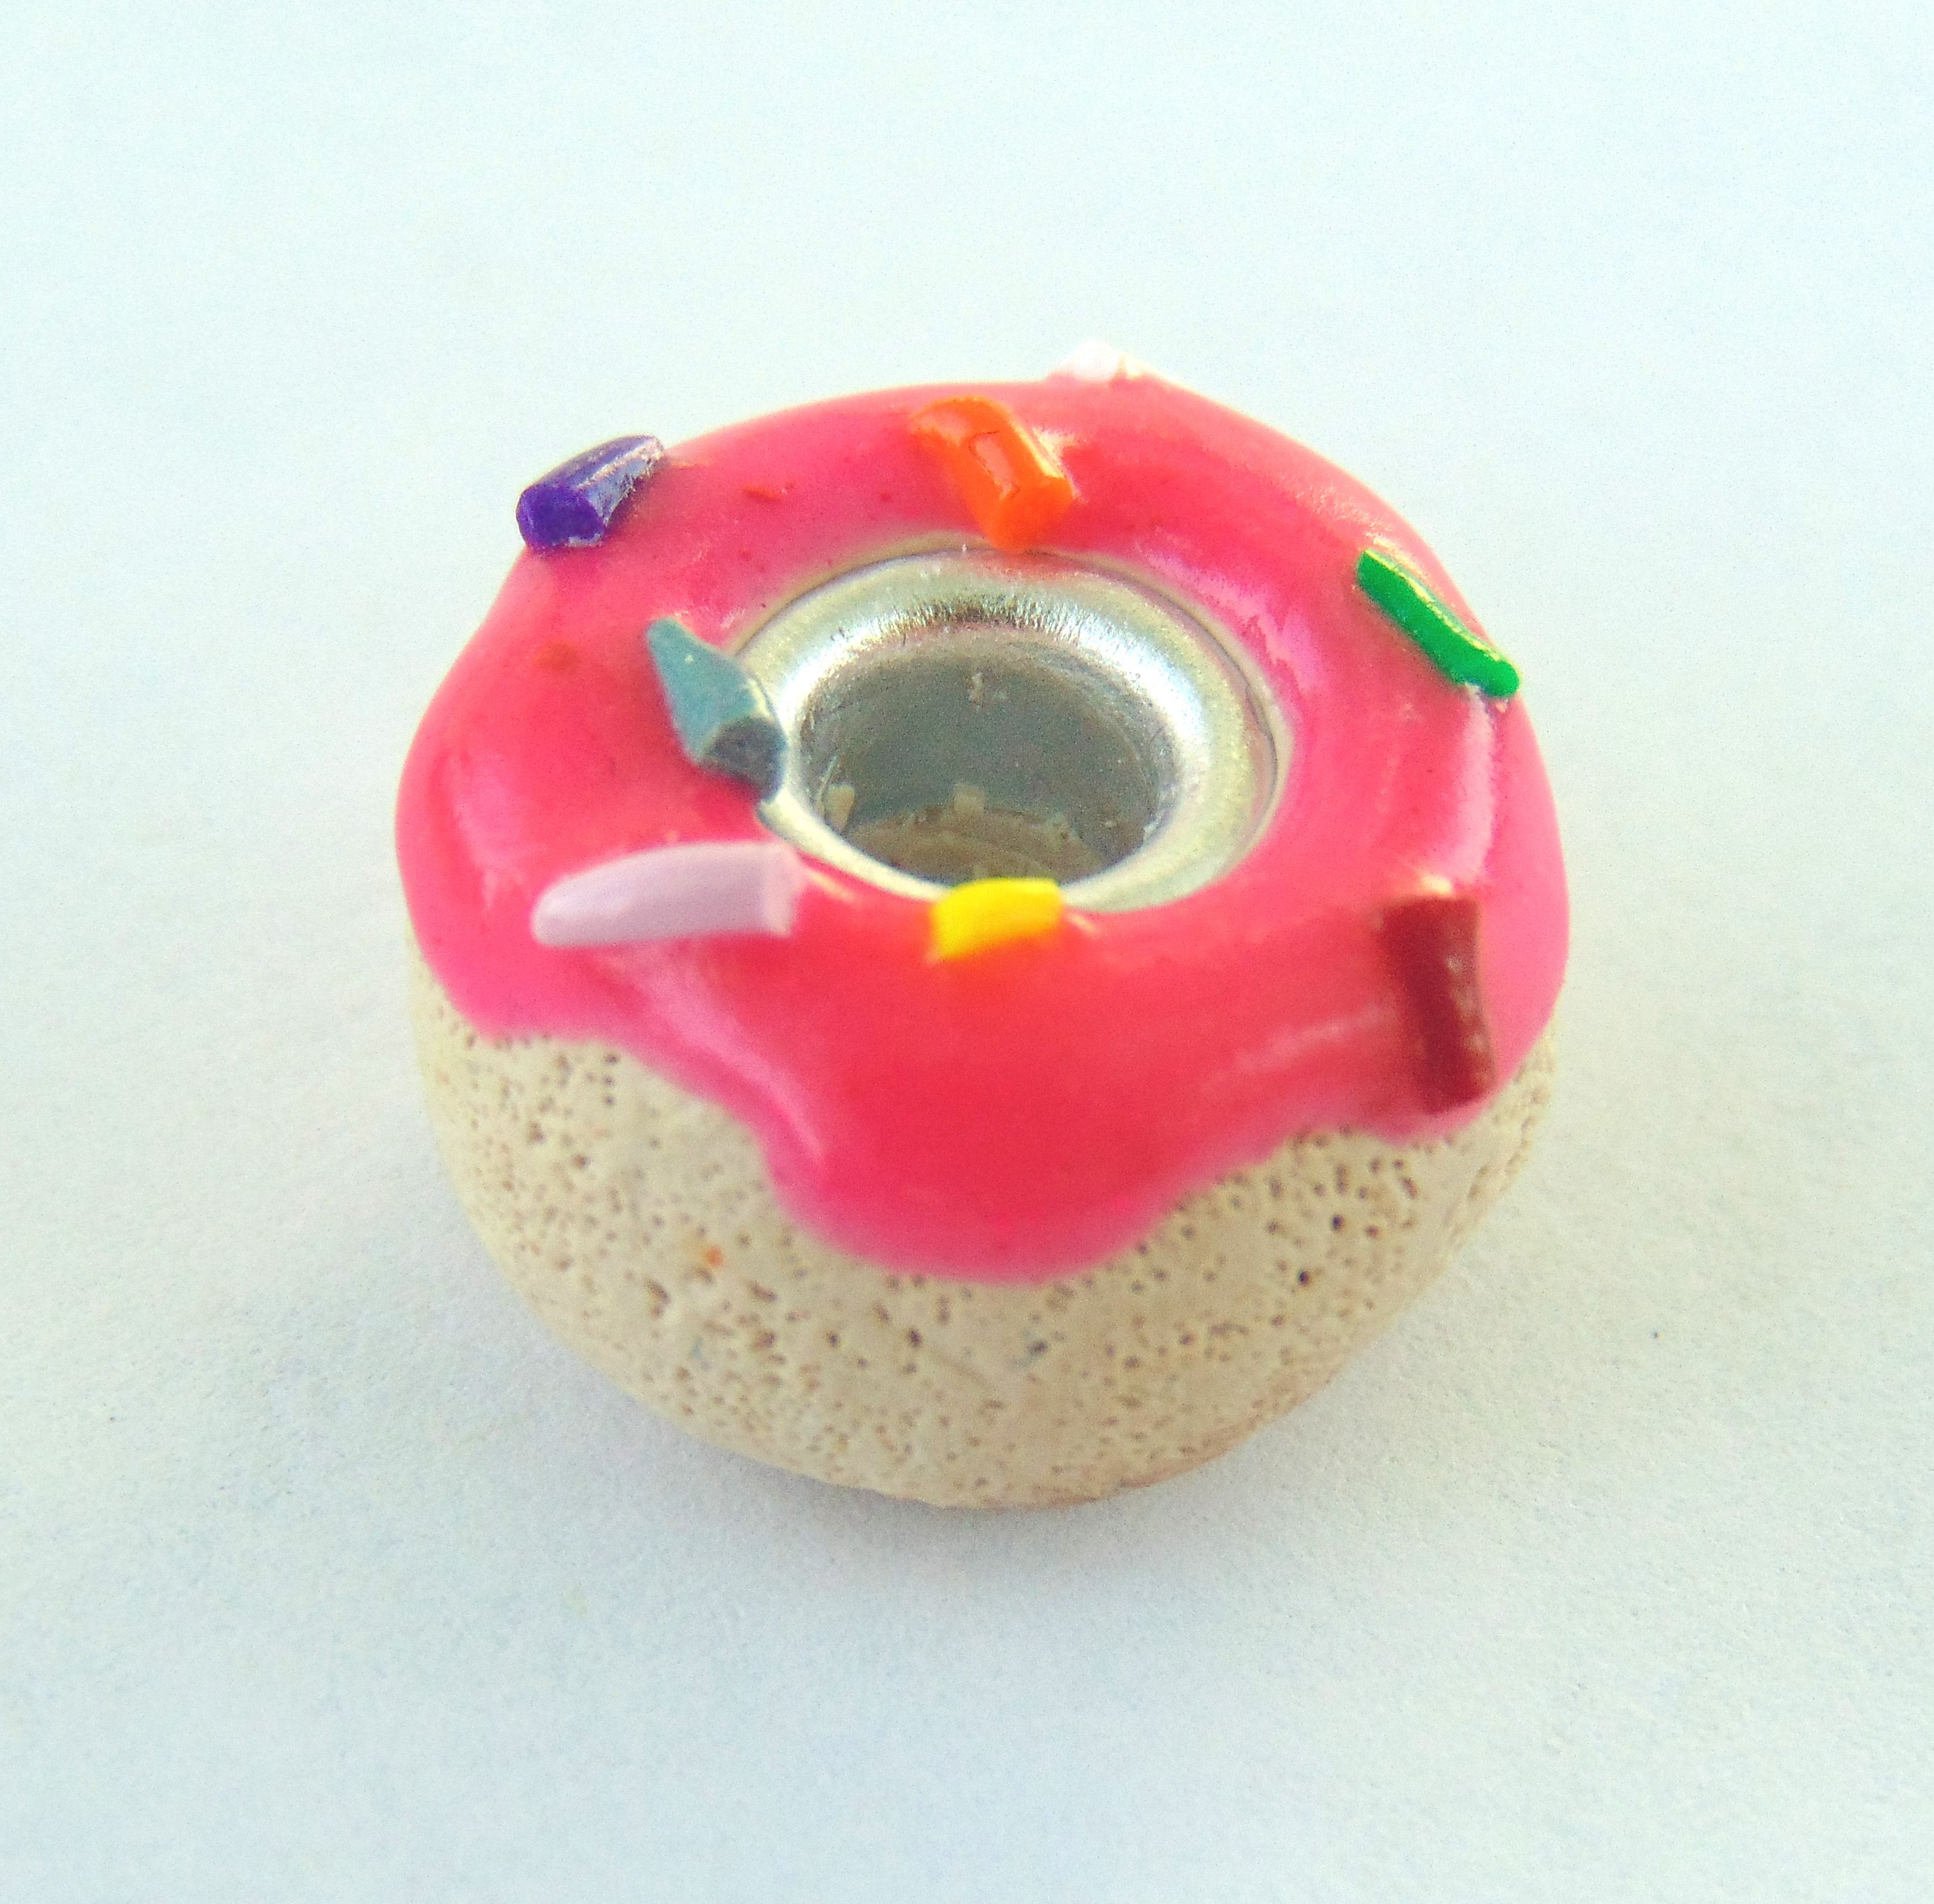 handmade donut sculpey cute clay food charm polymer pink handcrafted frosted sculpted sprinkle doughnut pandora bead pastry